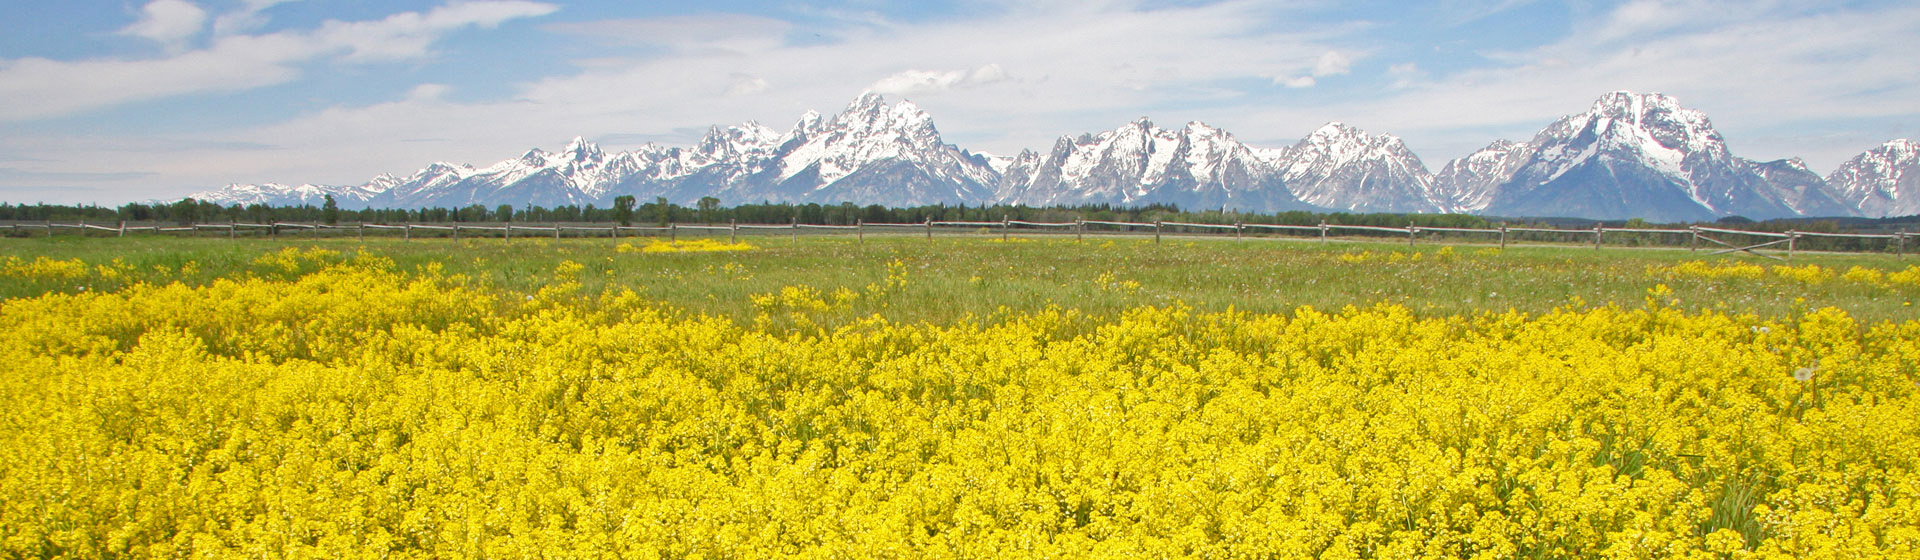 Grand Teton, Wyoming.